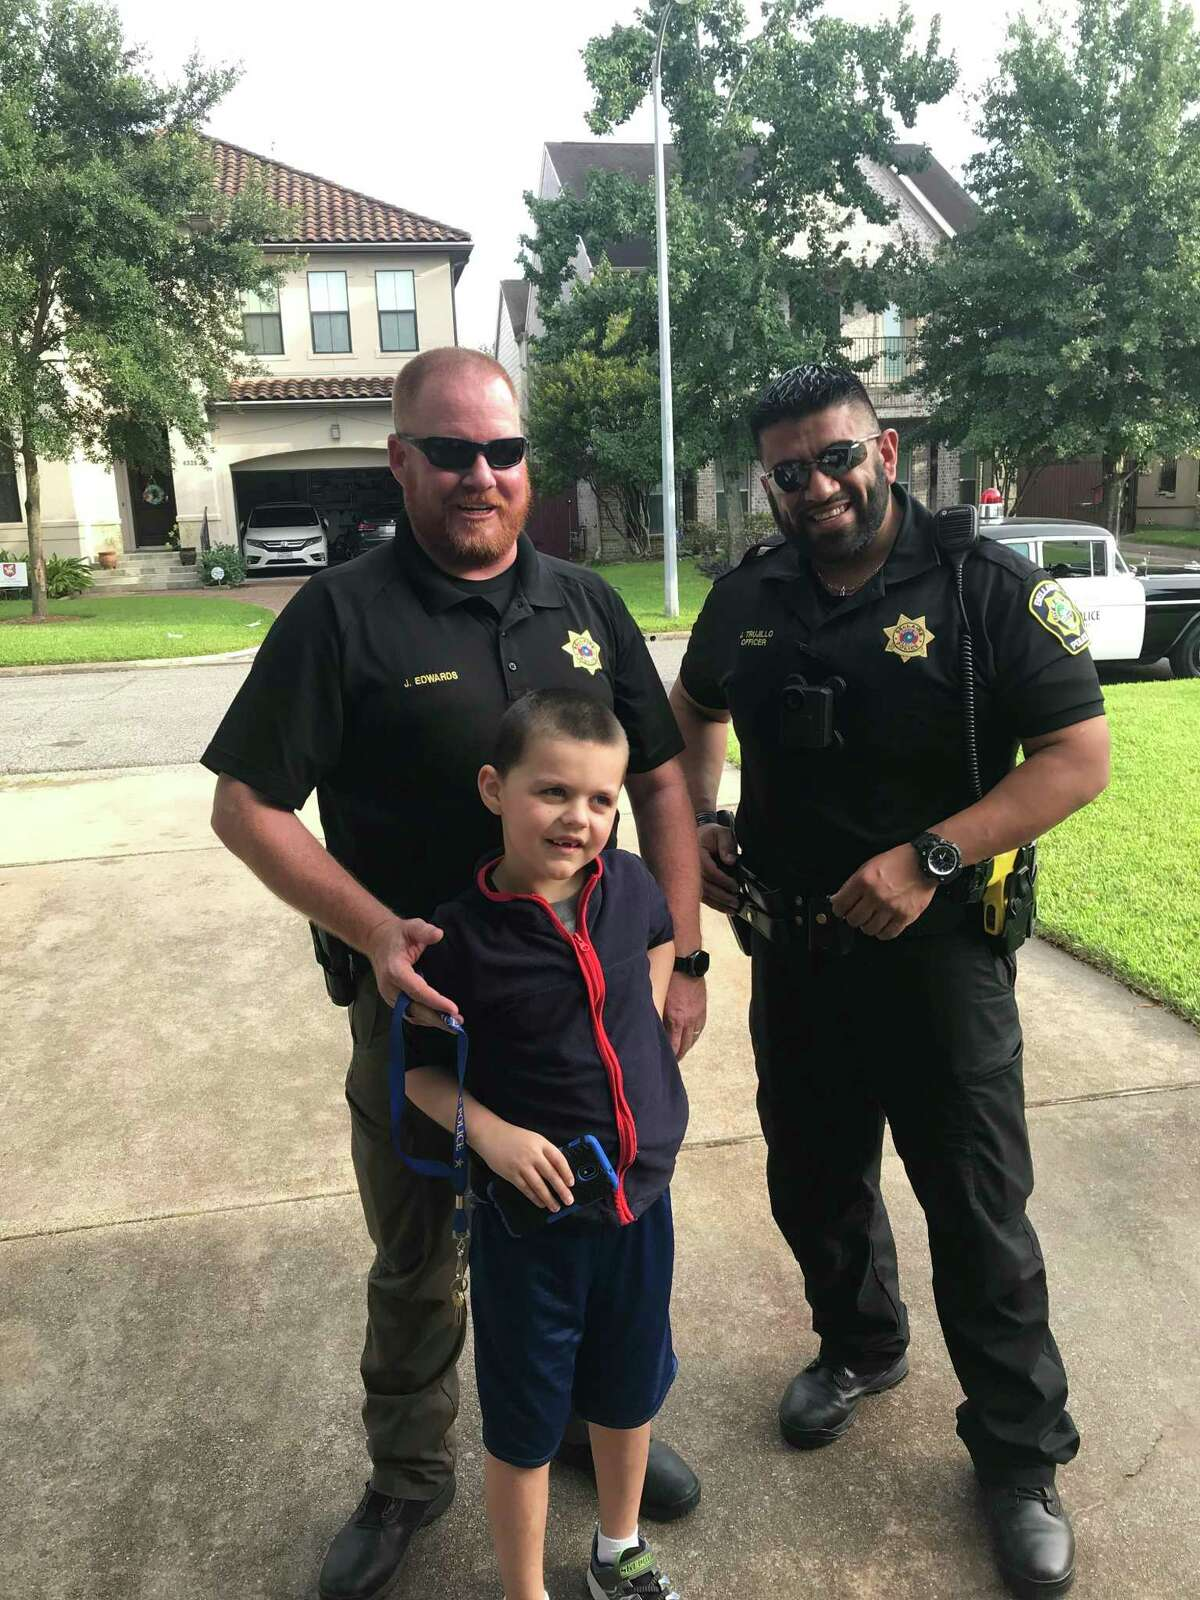 Officer Edwards and Officer Trujillo pose for a photo with Jack when the officers came to the Selig's house to enroll Jack into the Home Safe Bellaire Program. Bellaire resident Liz Selig helped the Bellaire Police Department implement the Home Safe Bellaire Program after her non-verbal son Jack wandered away from home.